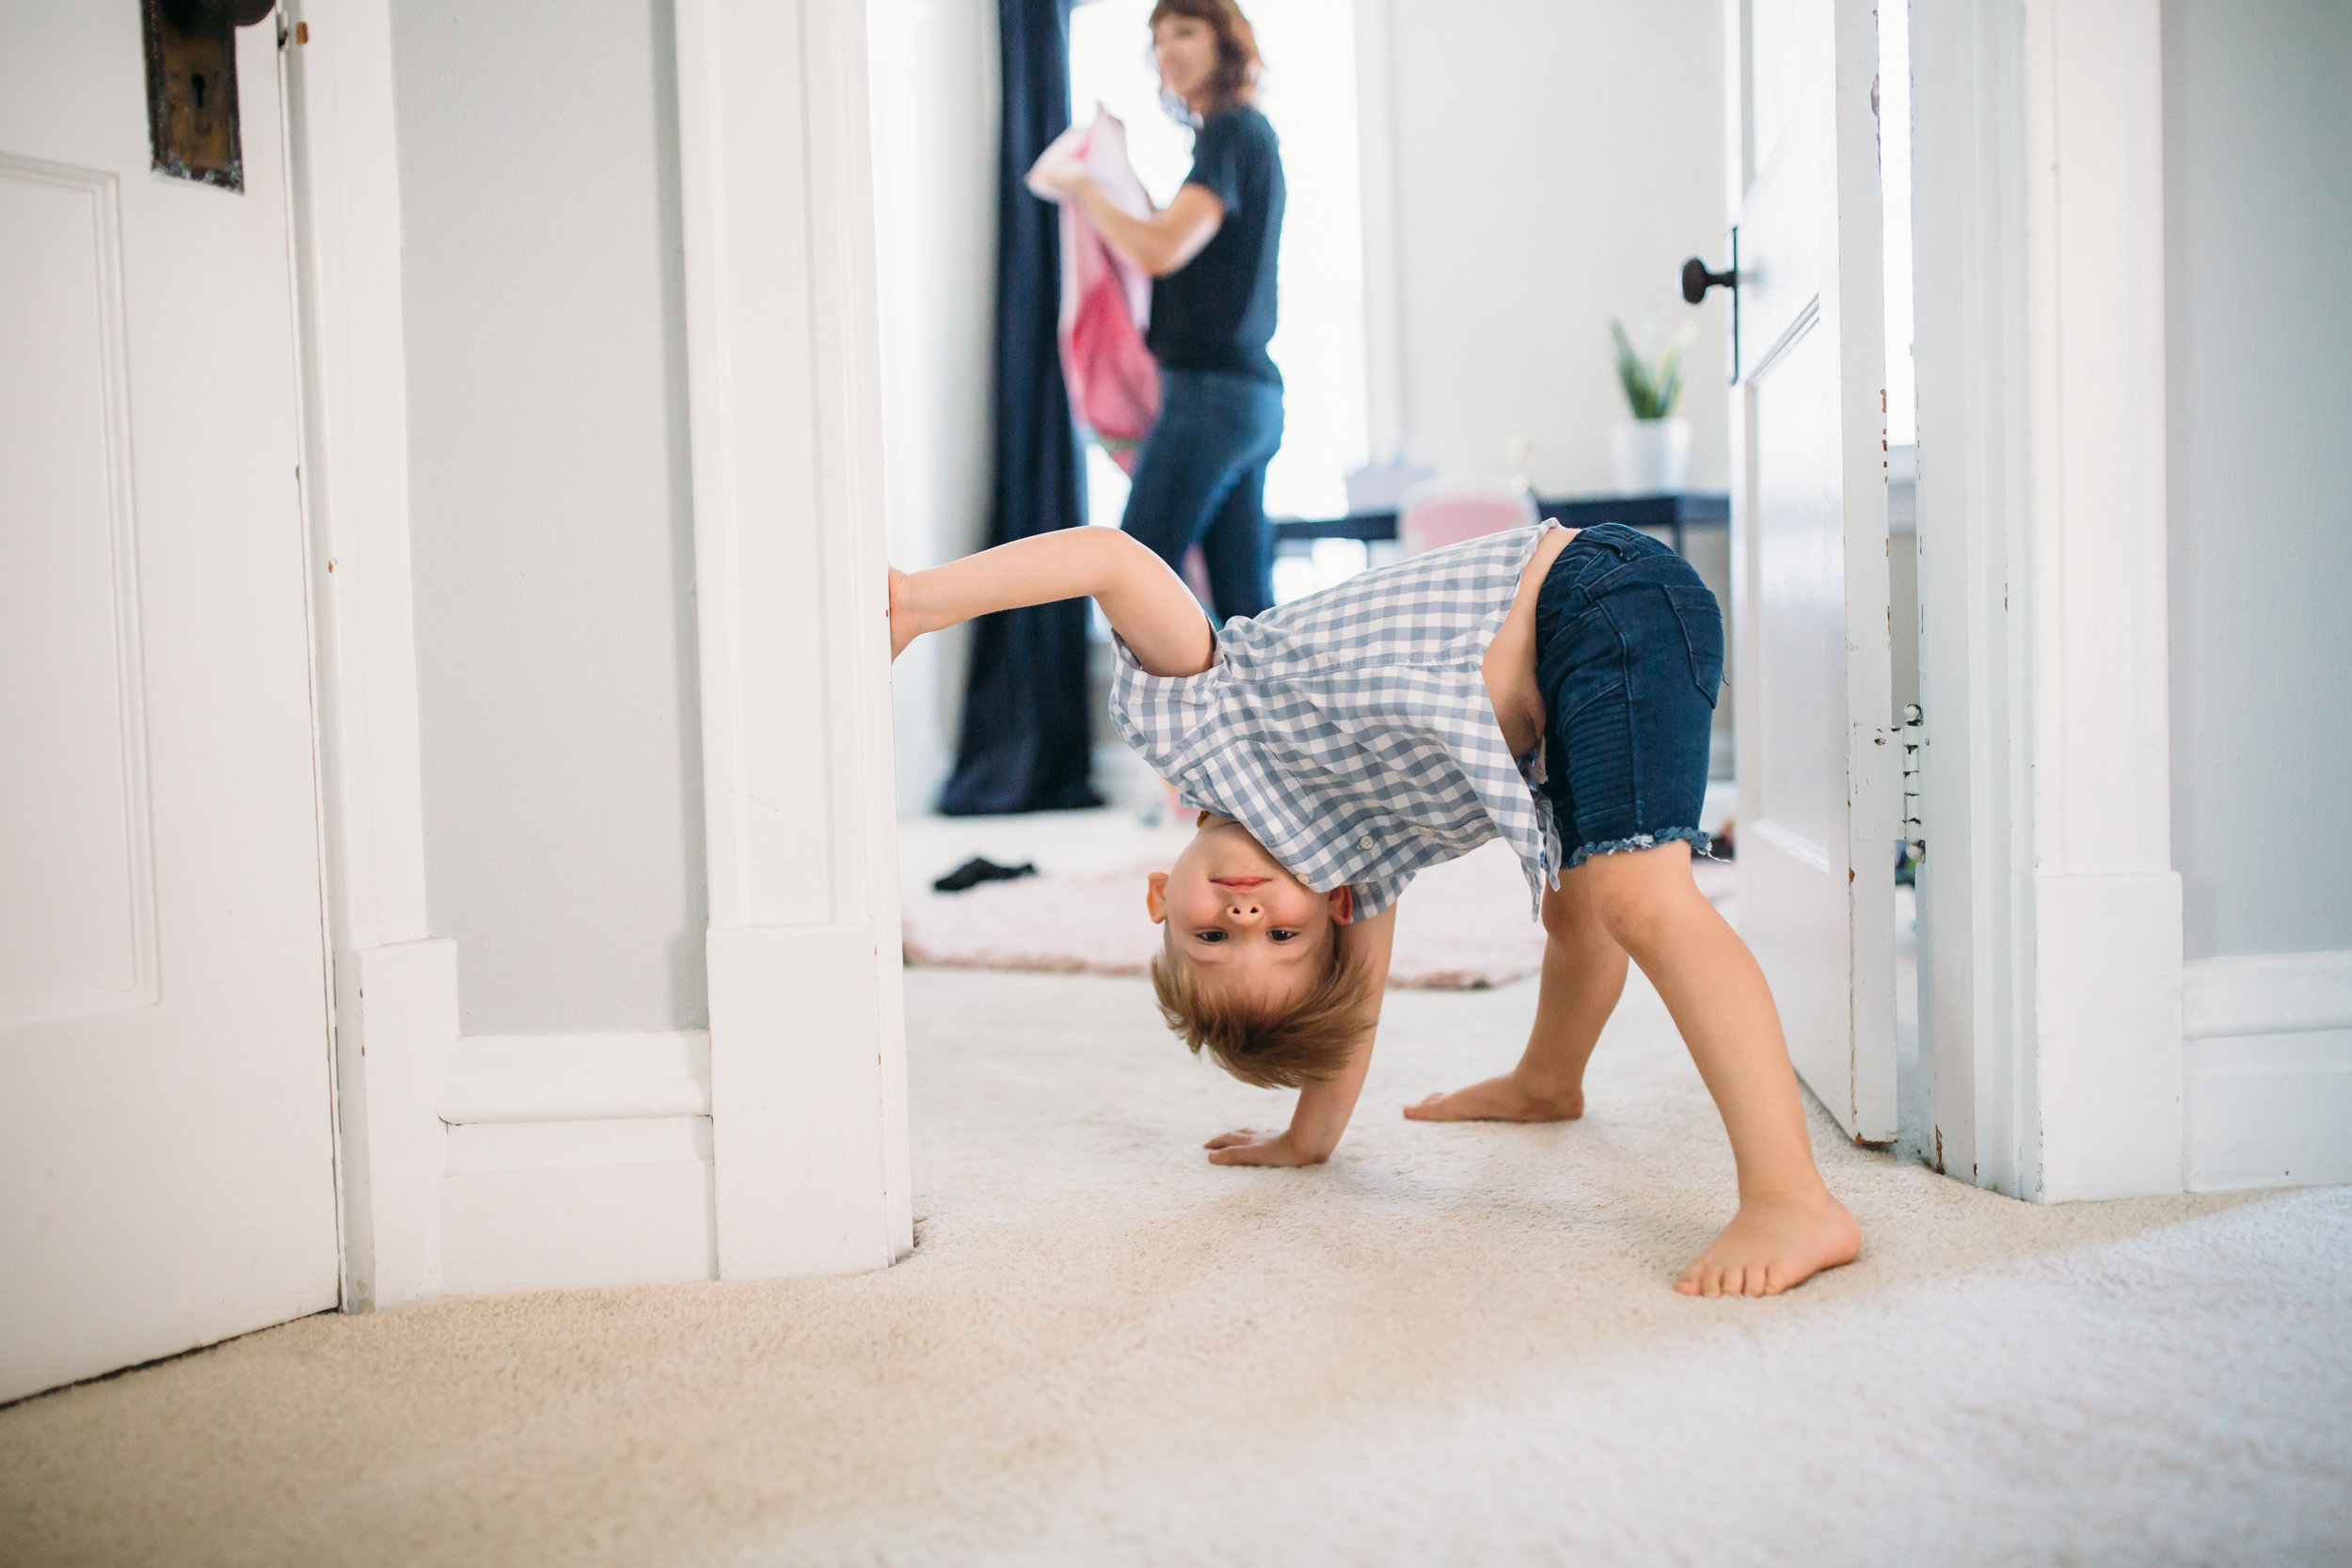 family photography Chicago, natural lifestyle photographer, boy being silly, boy doing cartwheel